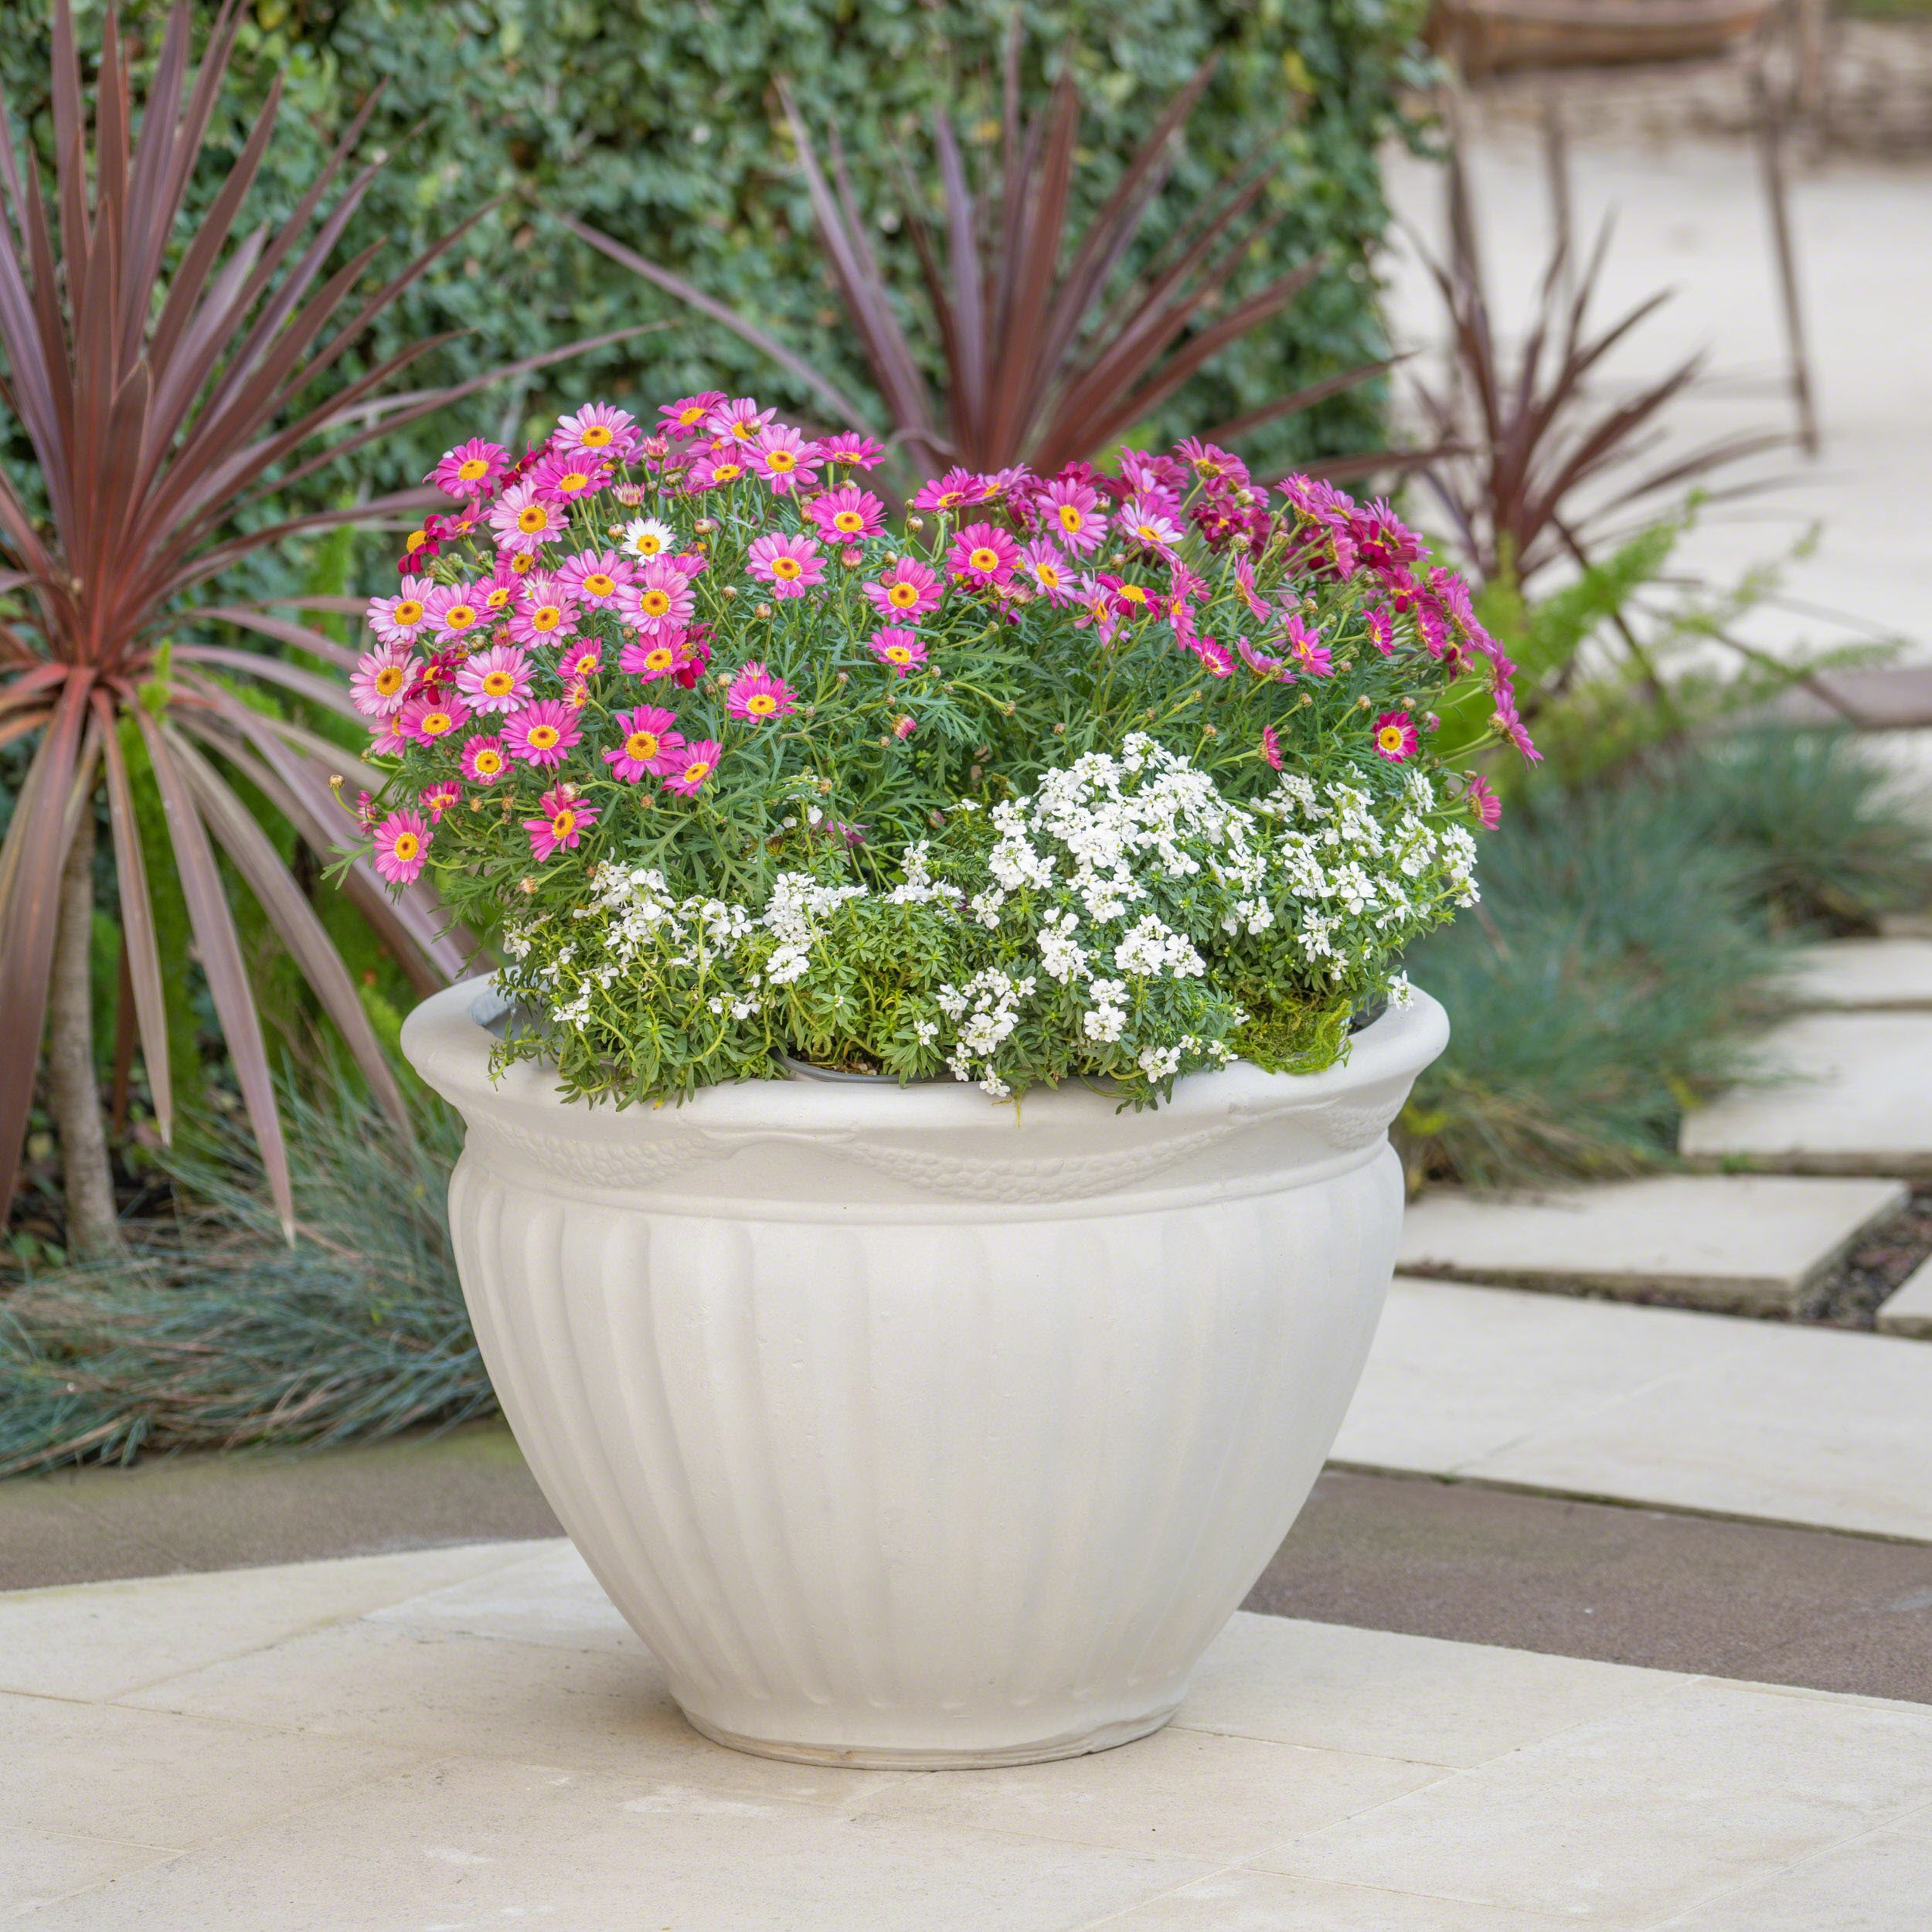 Great Deal Furniture Nicholson Outdoor Antique White Finished Cast Stone Planter by Great Deal Furniture